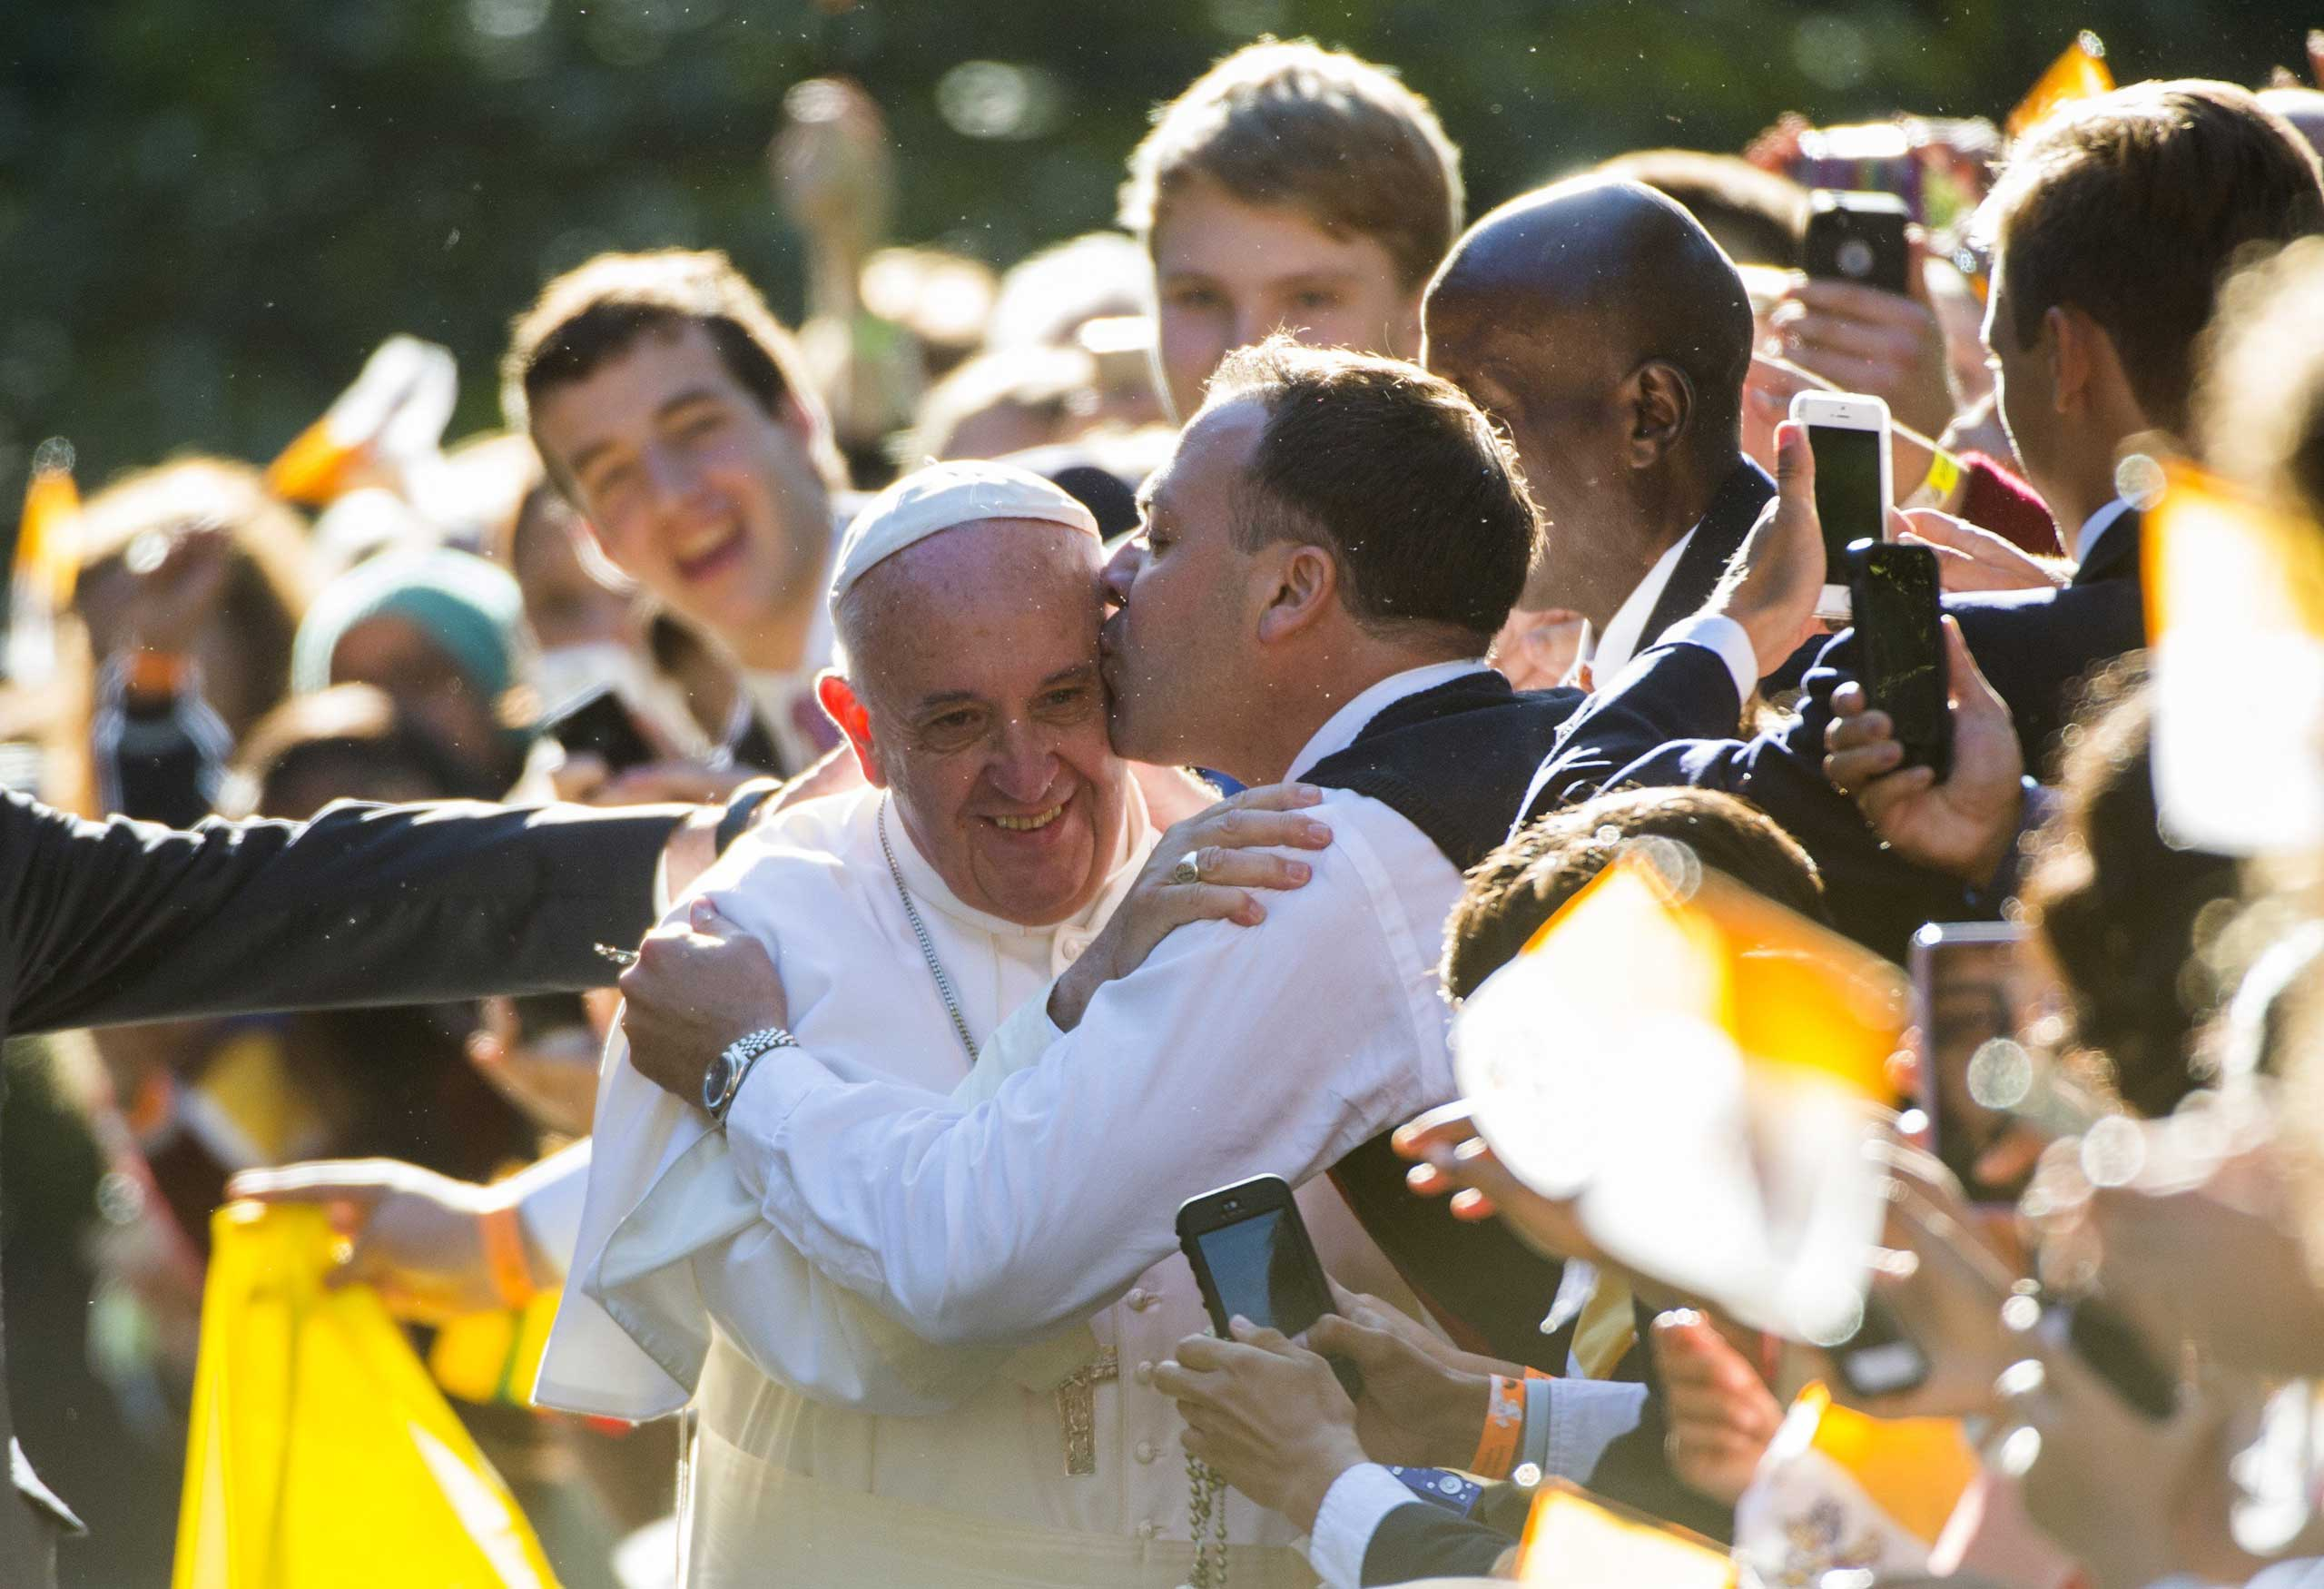 Pope Francis takereceives a kiss, outside the Apostolic Nunciature to the United States in Washington, on Sept. 23, 2015 .